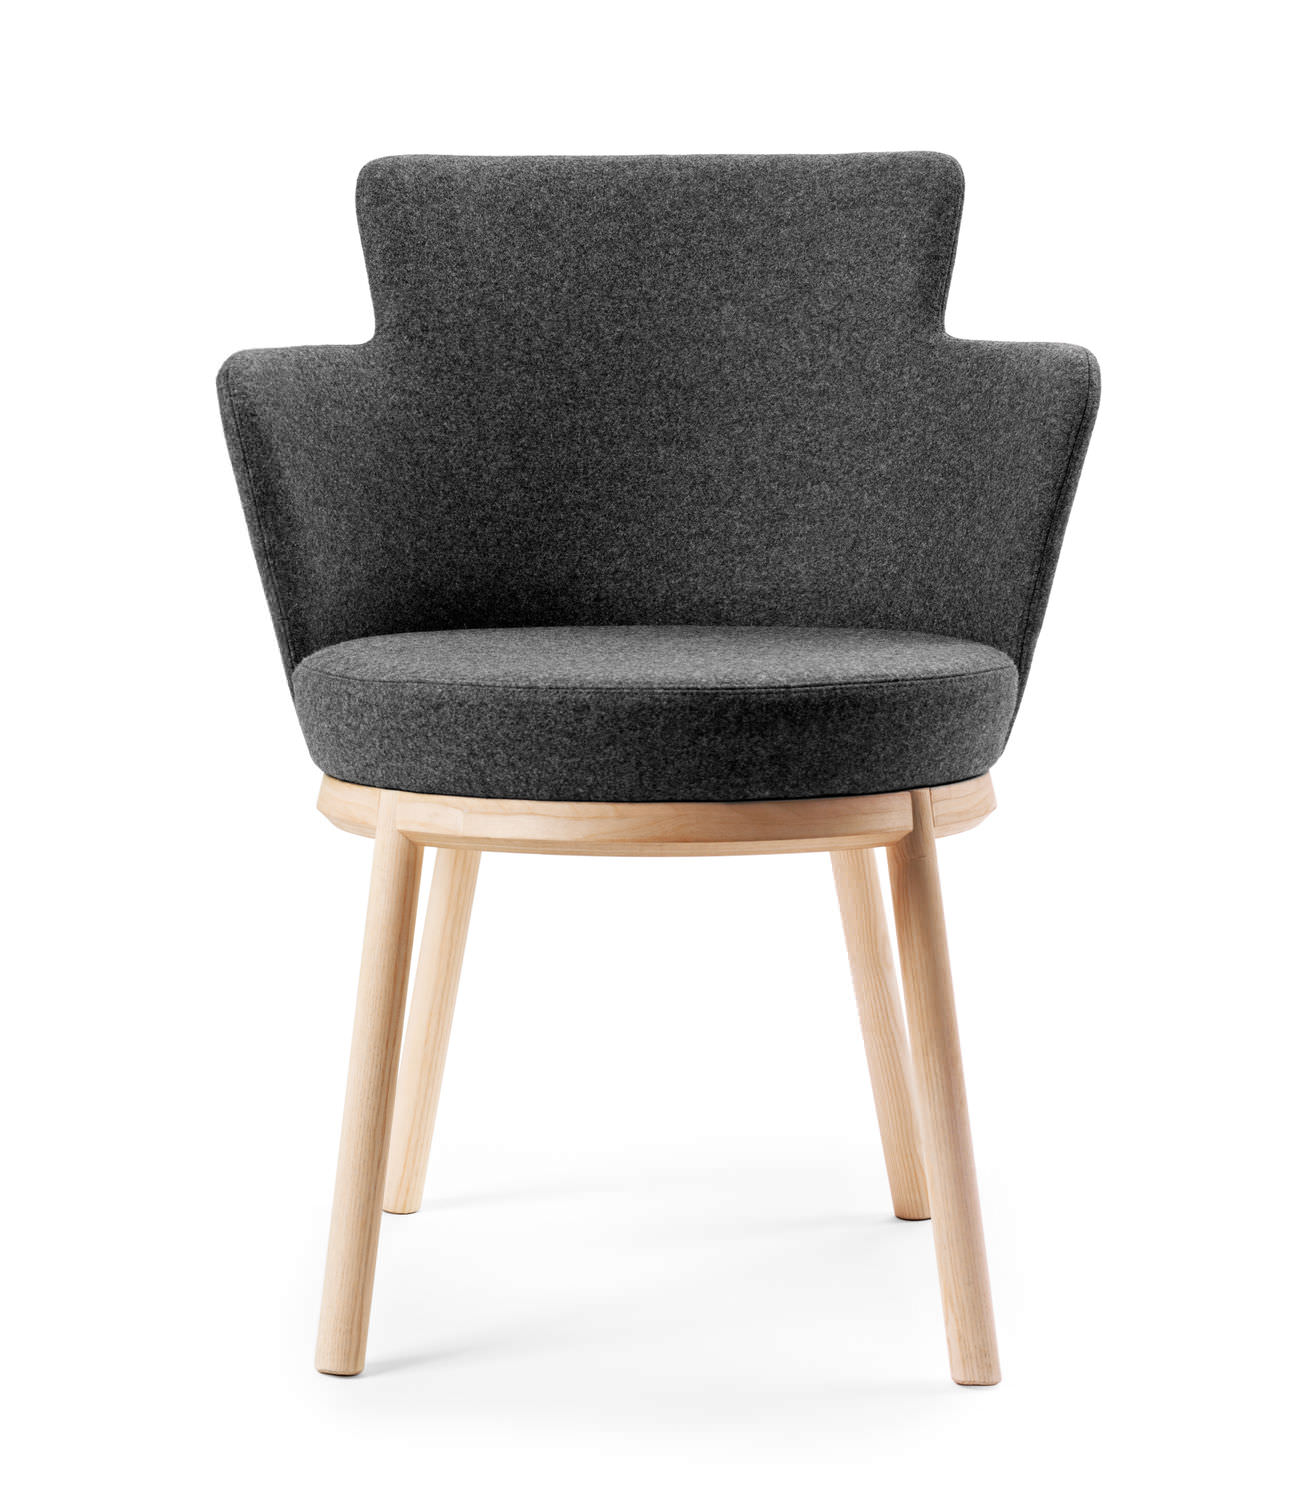 Superieur Contemporary Chair / Upholstered / With Armrests / Fabric ...